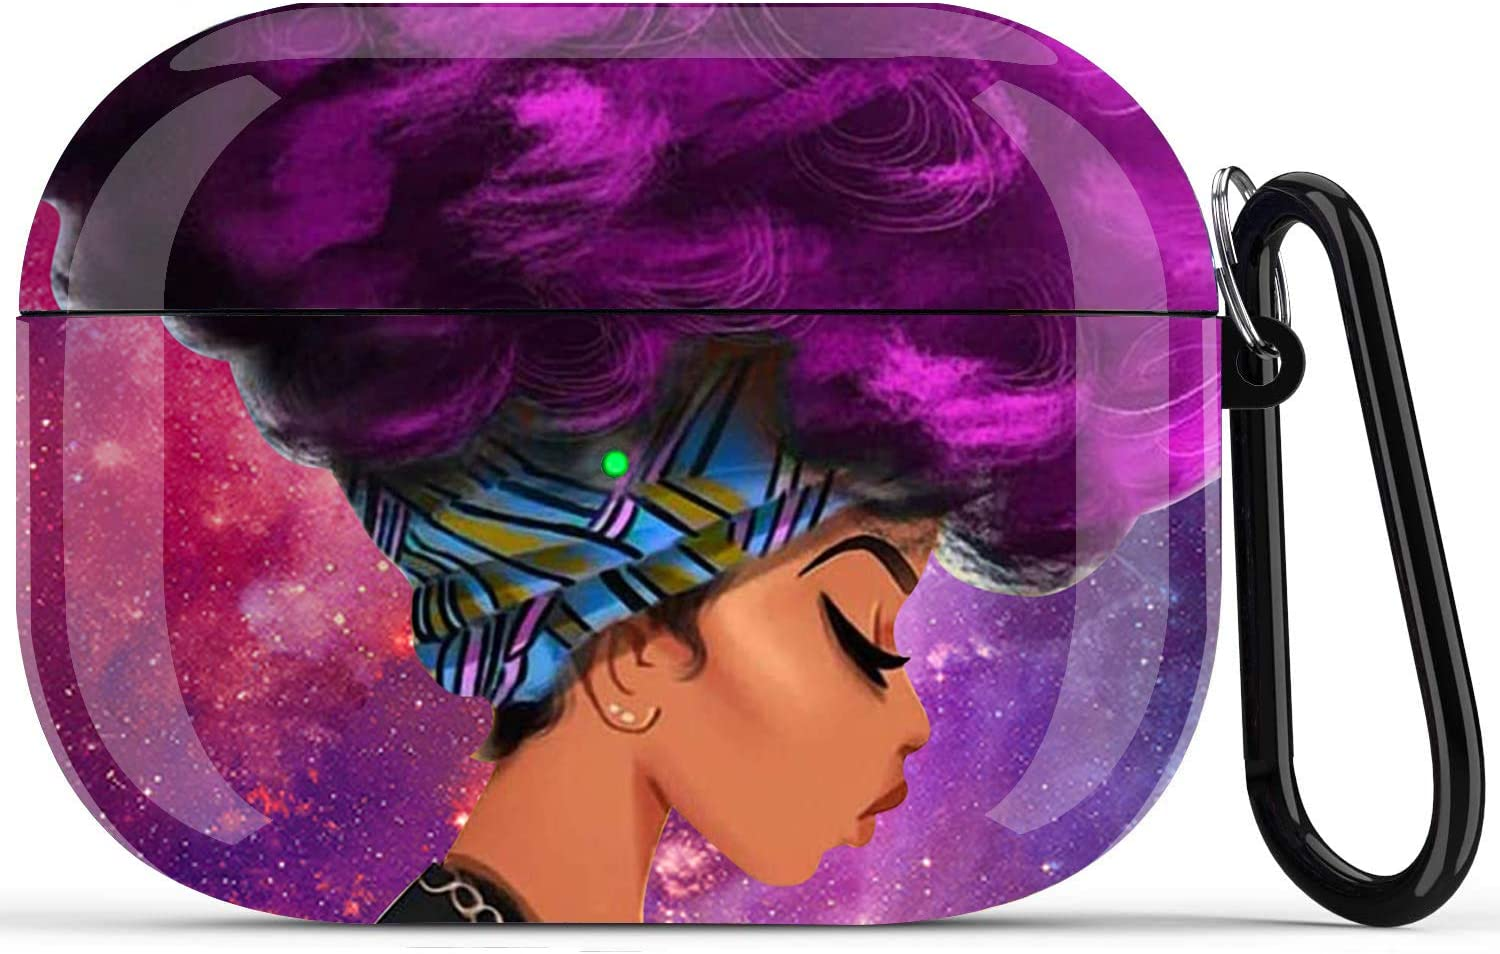 Black Girl Airpods Pro Case - Fibuntun African American Protective Hard Case Cover Skin Portable & Shockproof Women Girls with Keychain for Apple Airpods Pro Charging Case - Purple Hair Girl